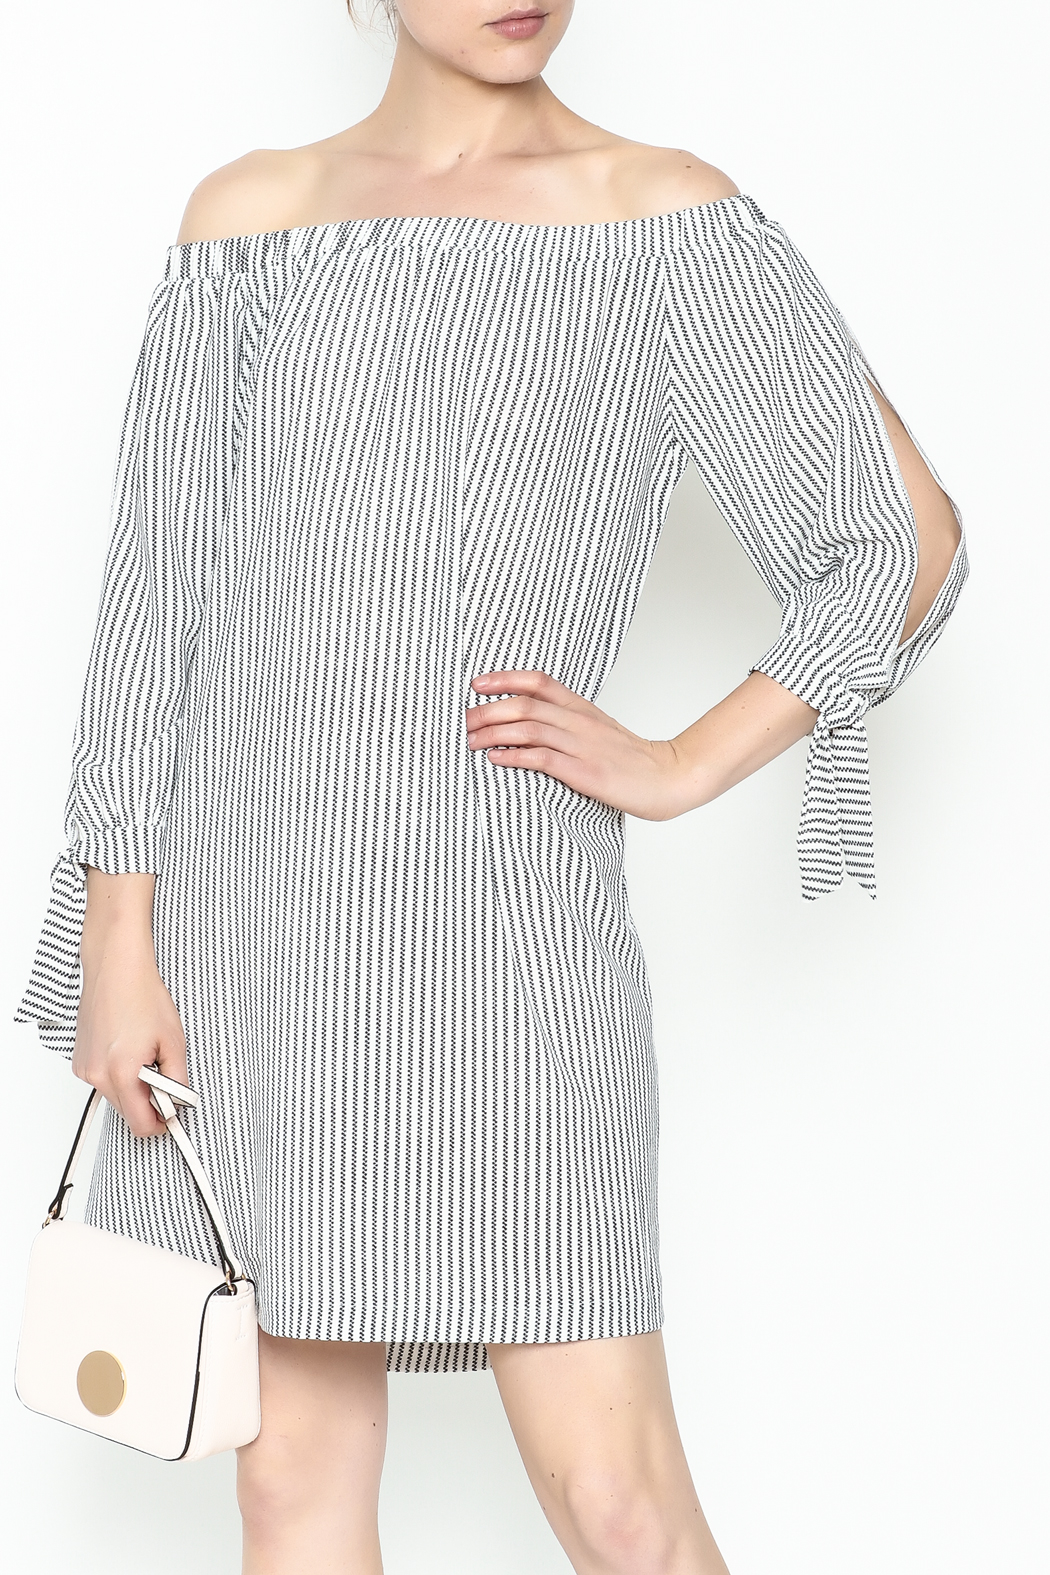 Veronica M Tatiana Striped Dress - Main Image